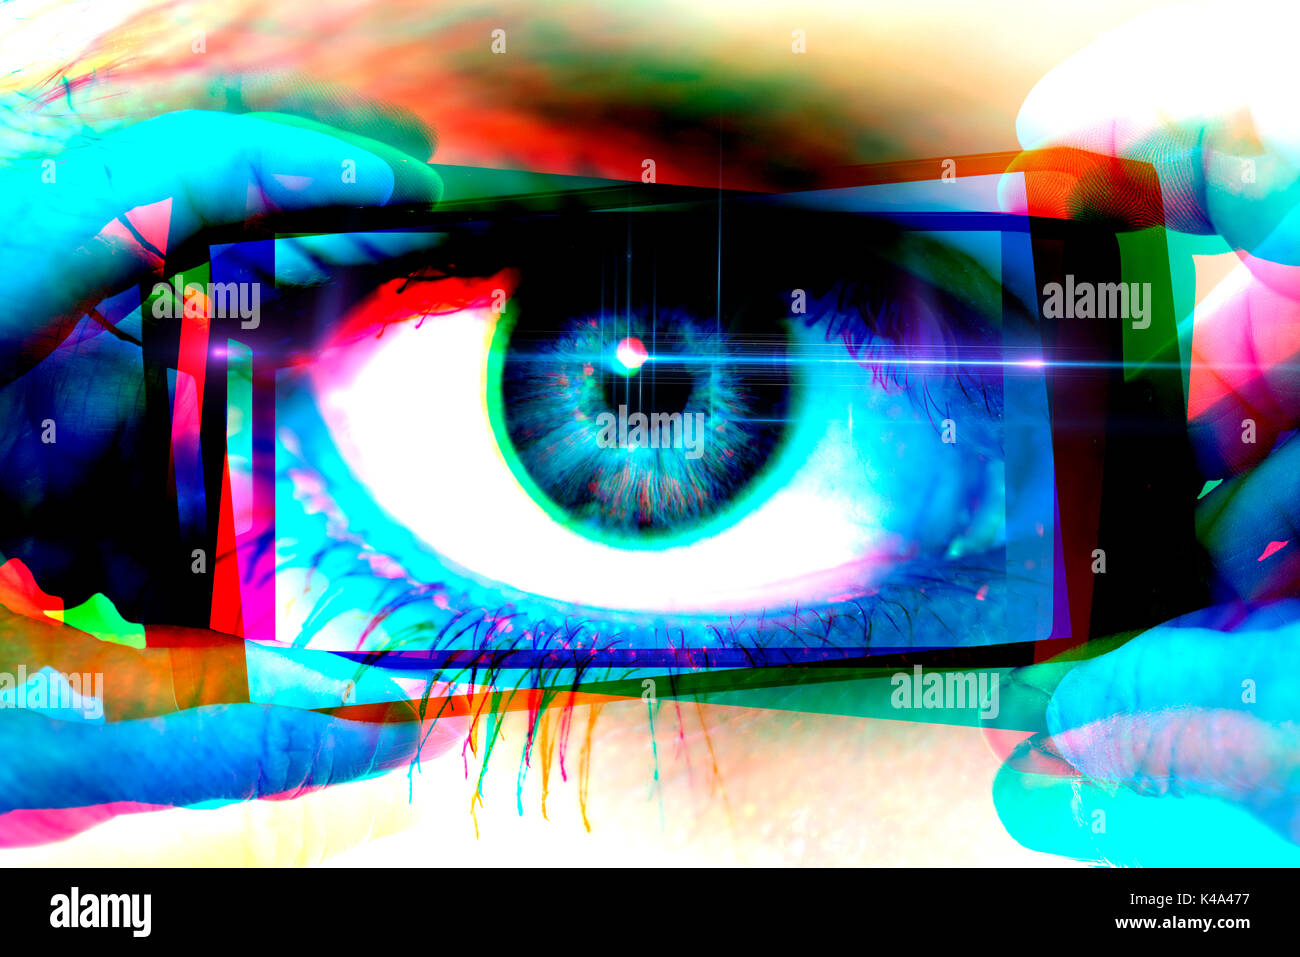 Womans Eye In A Cellphone, Gawker - Stock Image